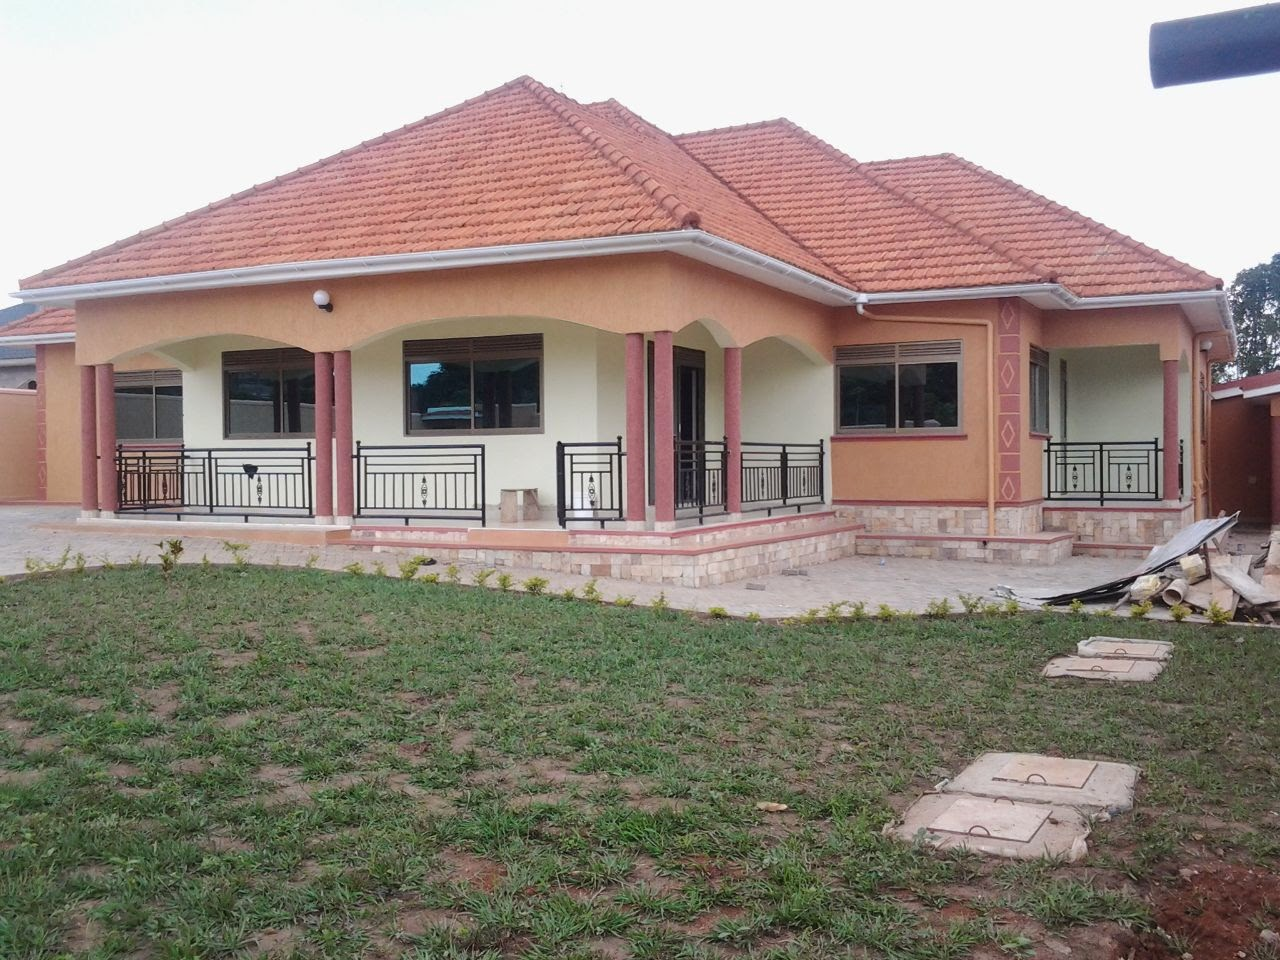 Houses for sale kampala uganda september 2014 for Houses plans for sale